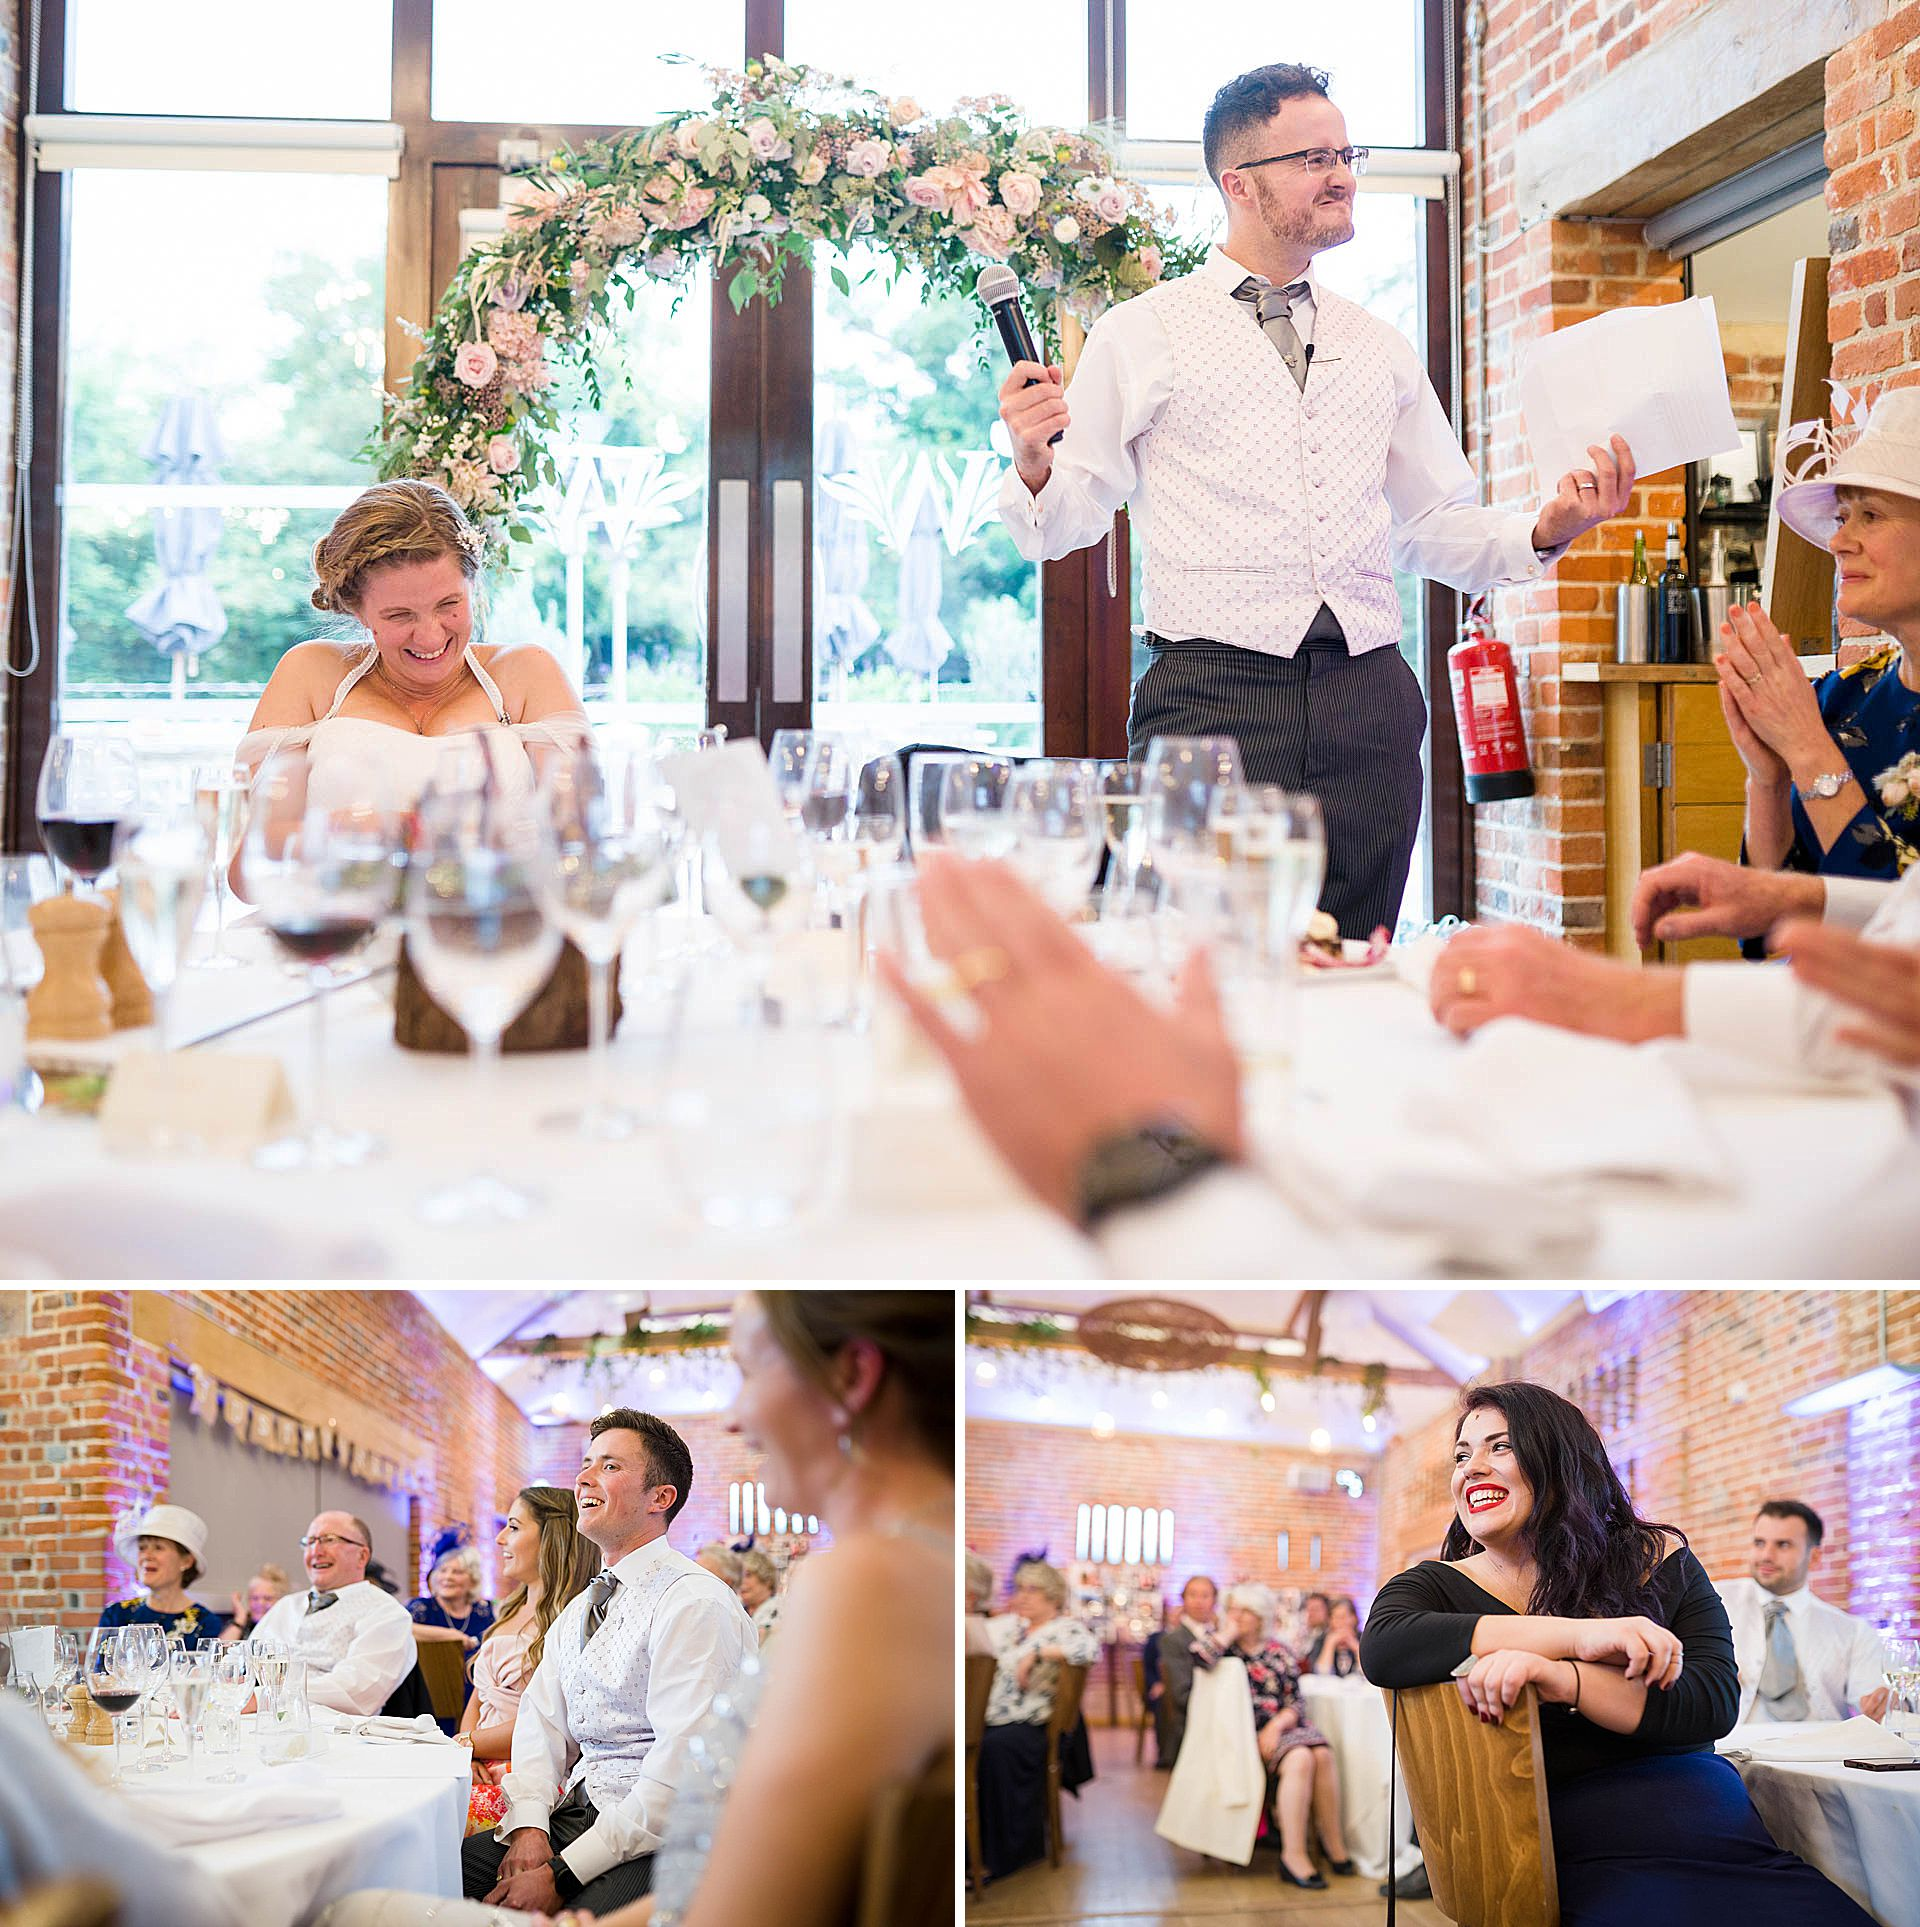 Wedding speeches at Wasing Park